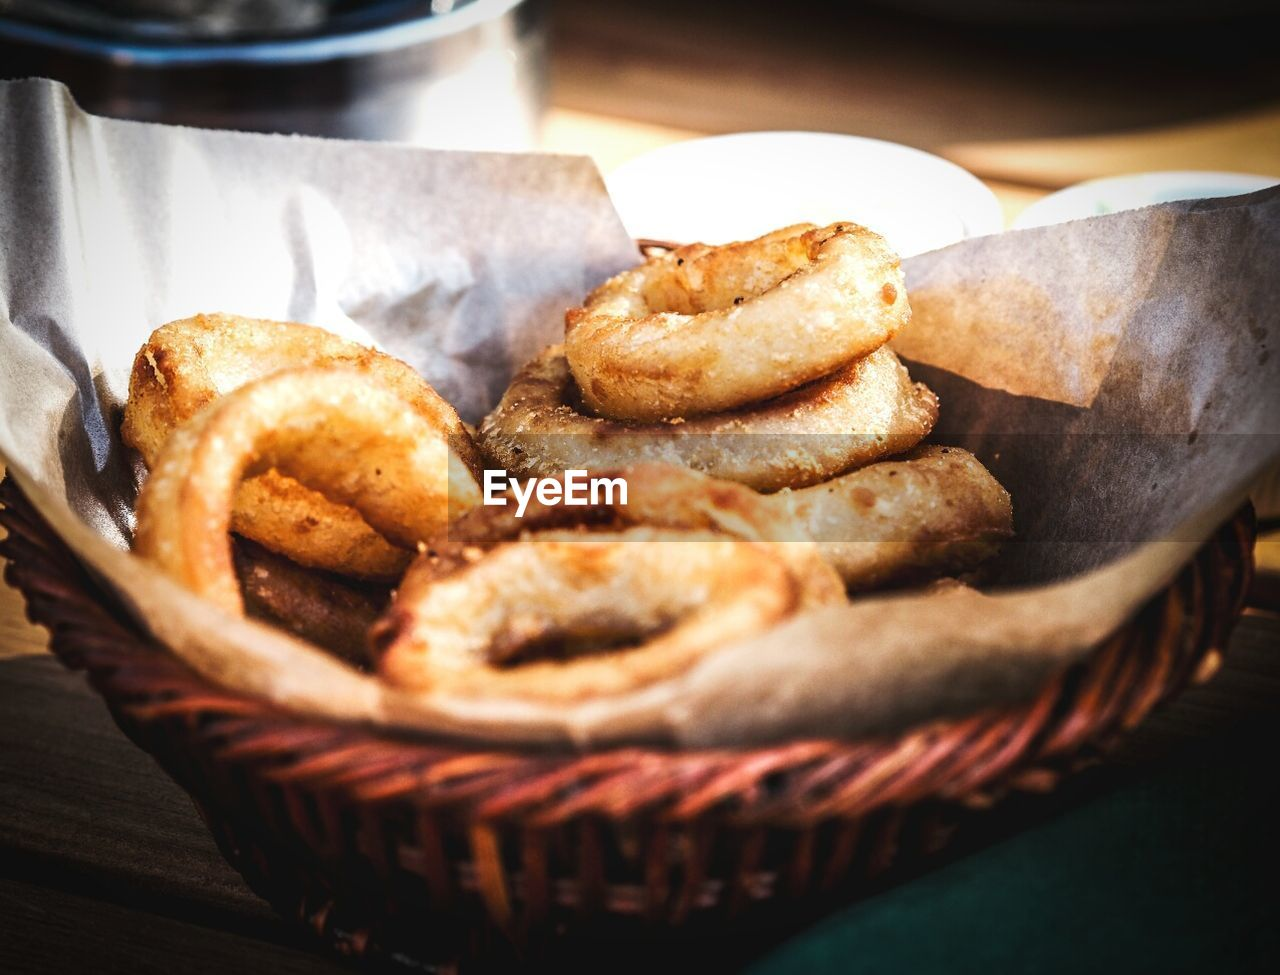 Close-Up Of Onion Rings In Basket On Table